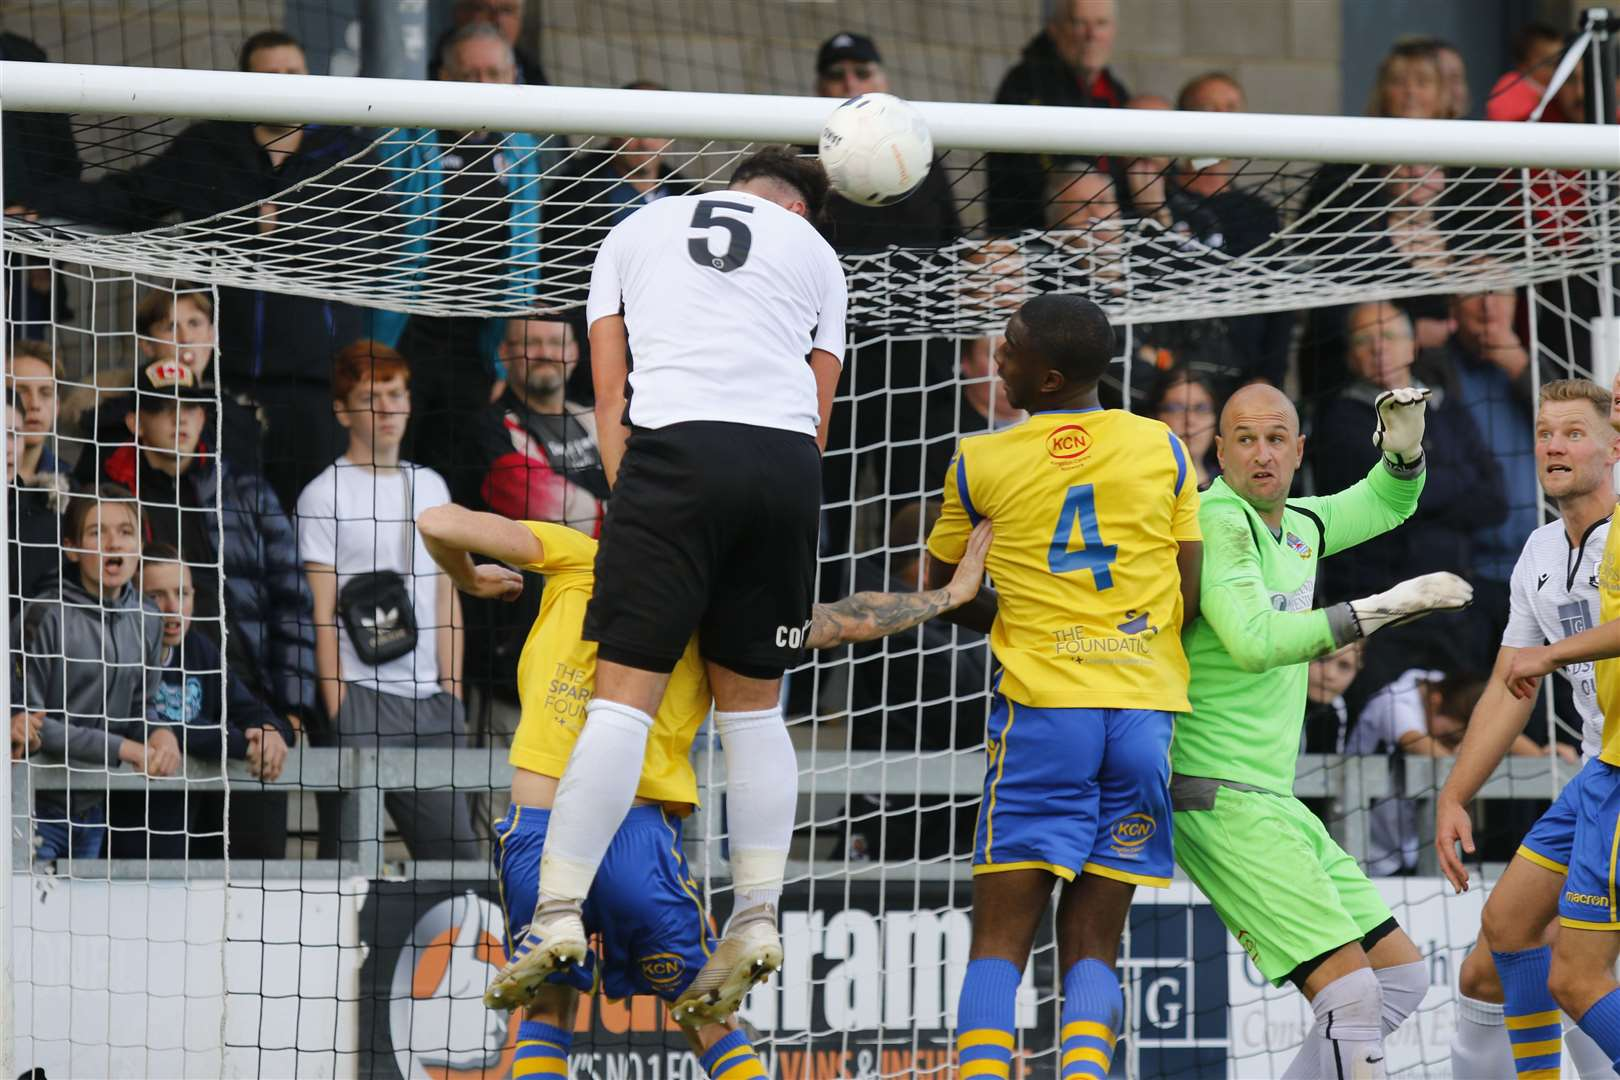 Dartford's Ronnie Vint is unable to convert this header against Kingstonian. Picture: Andy Jones